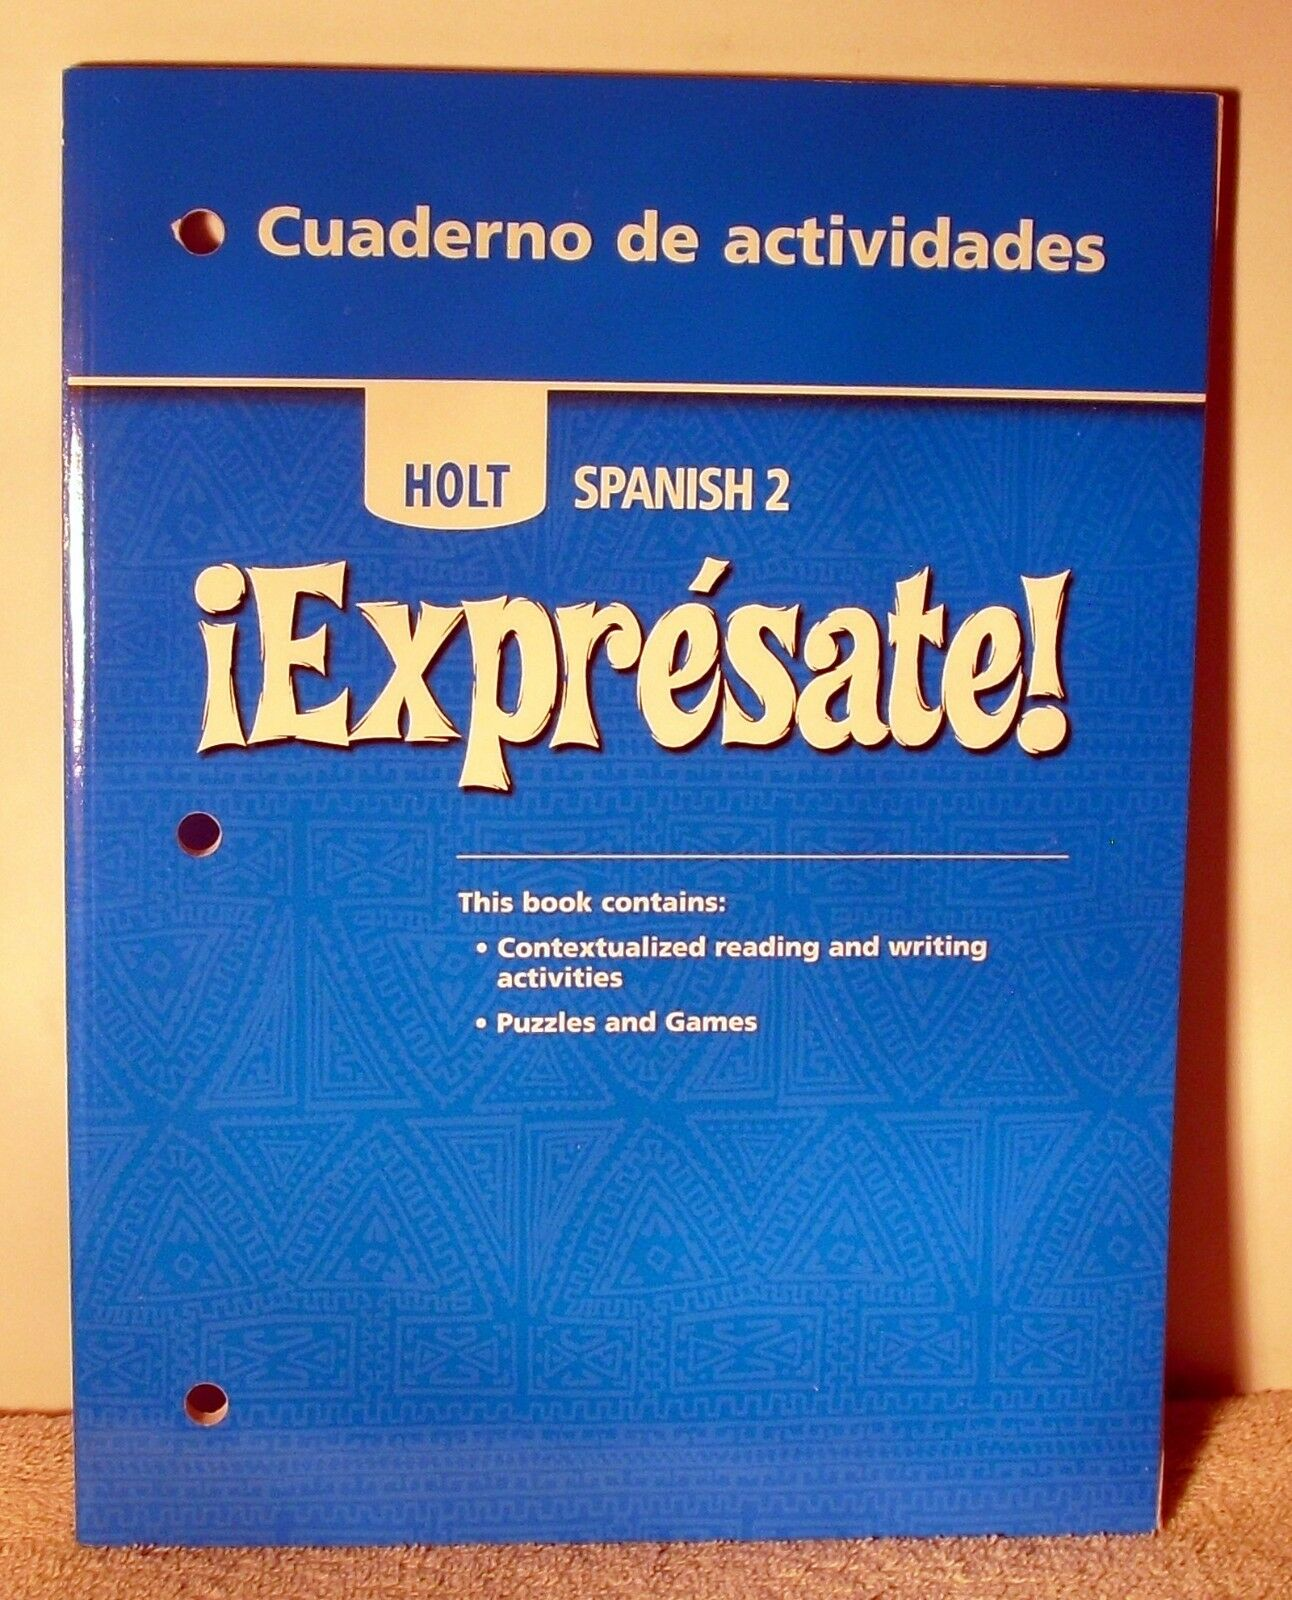 Holt spanish 3 expresate study guide array expr sate expresate spanish 2 by rinehart and winston staff fandeluxe Choice Image